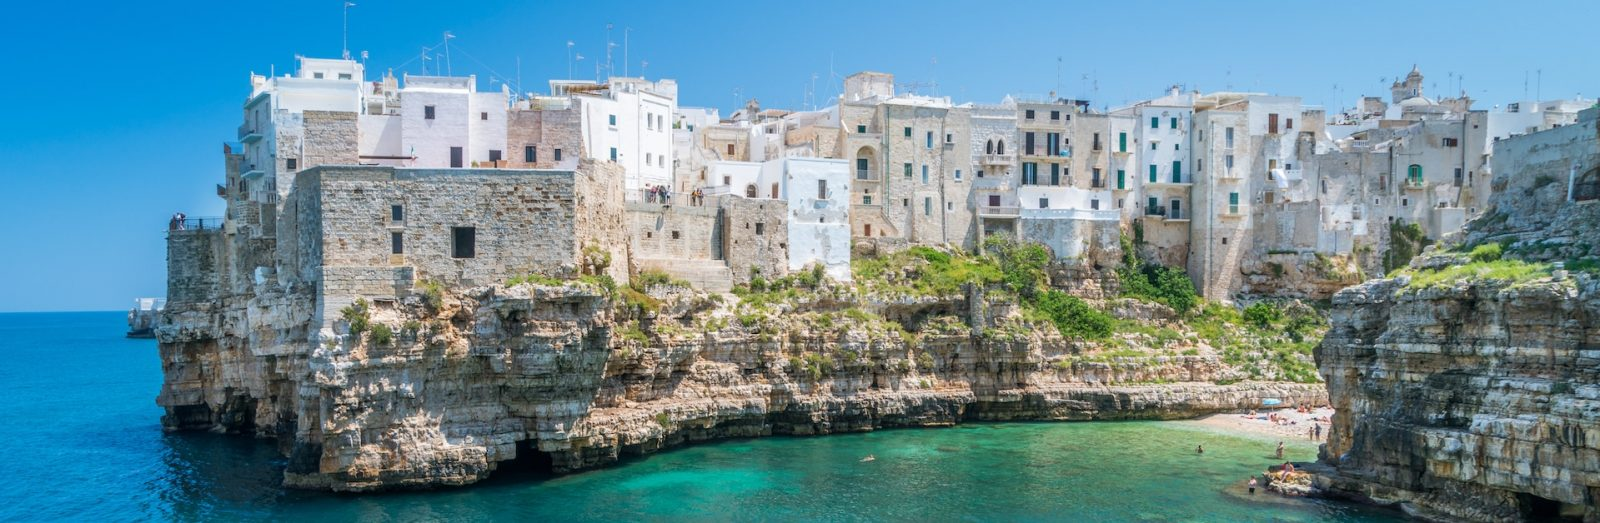 Top Shore Excursions in Bari | My Cruise Excursion